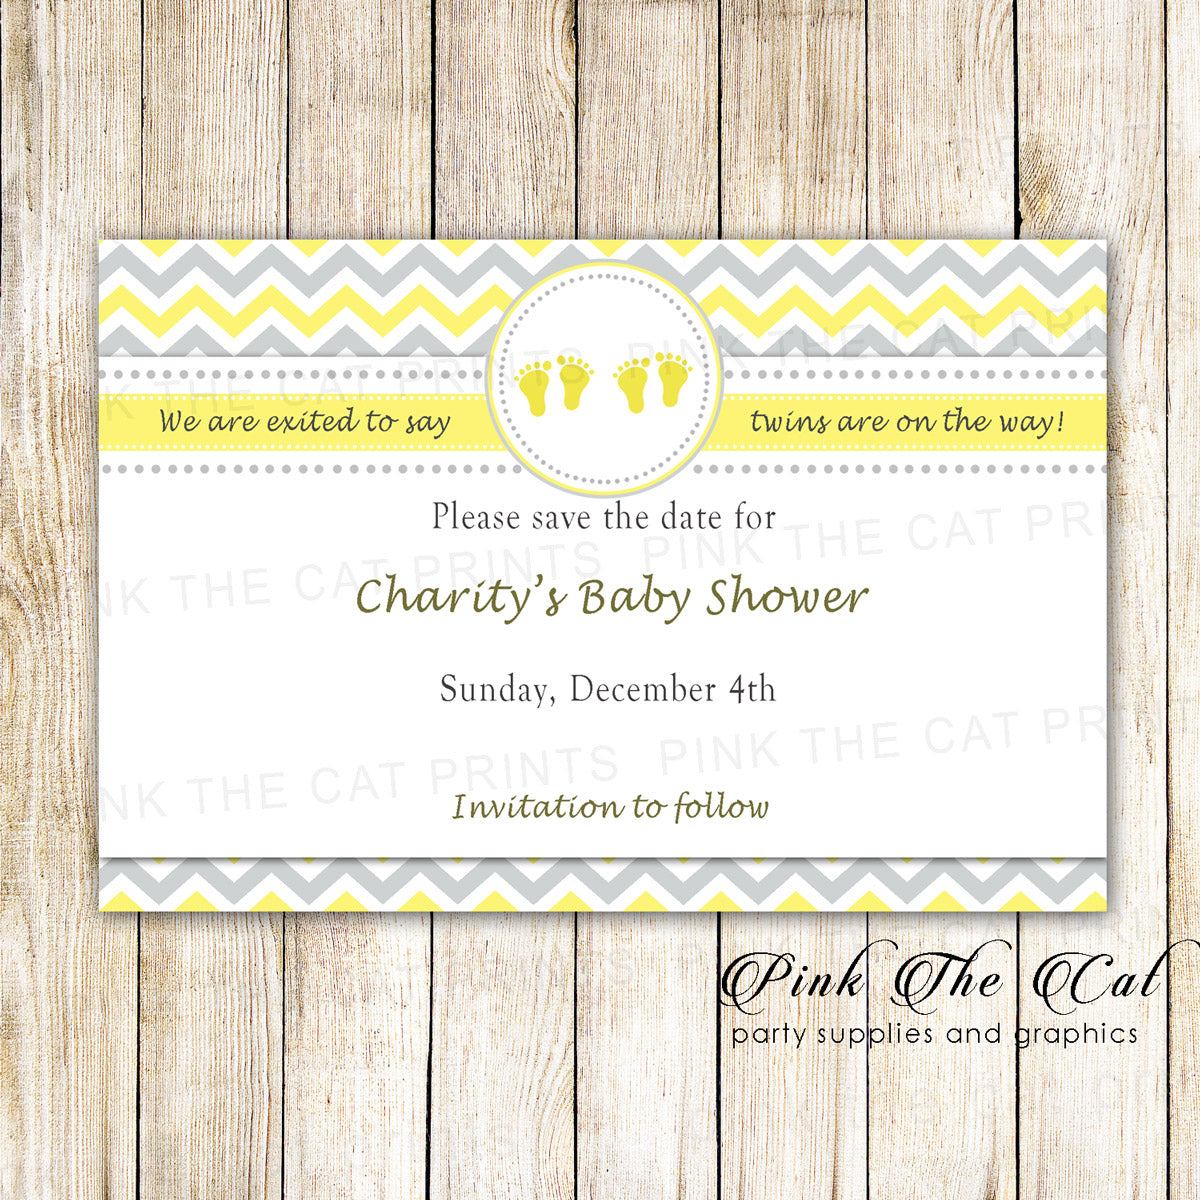 30 Cards Twins Baby Shower Save The Date Yellow Gray Pink The Cat